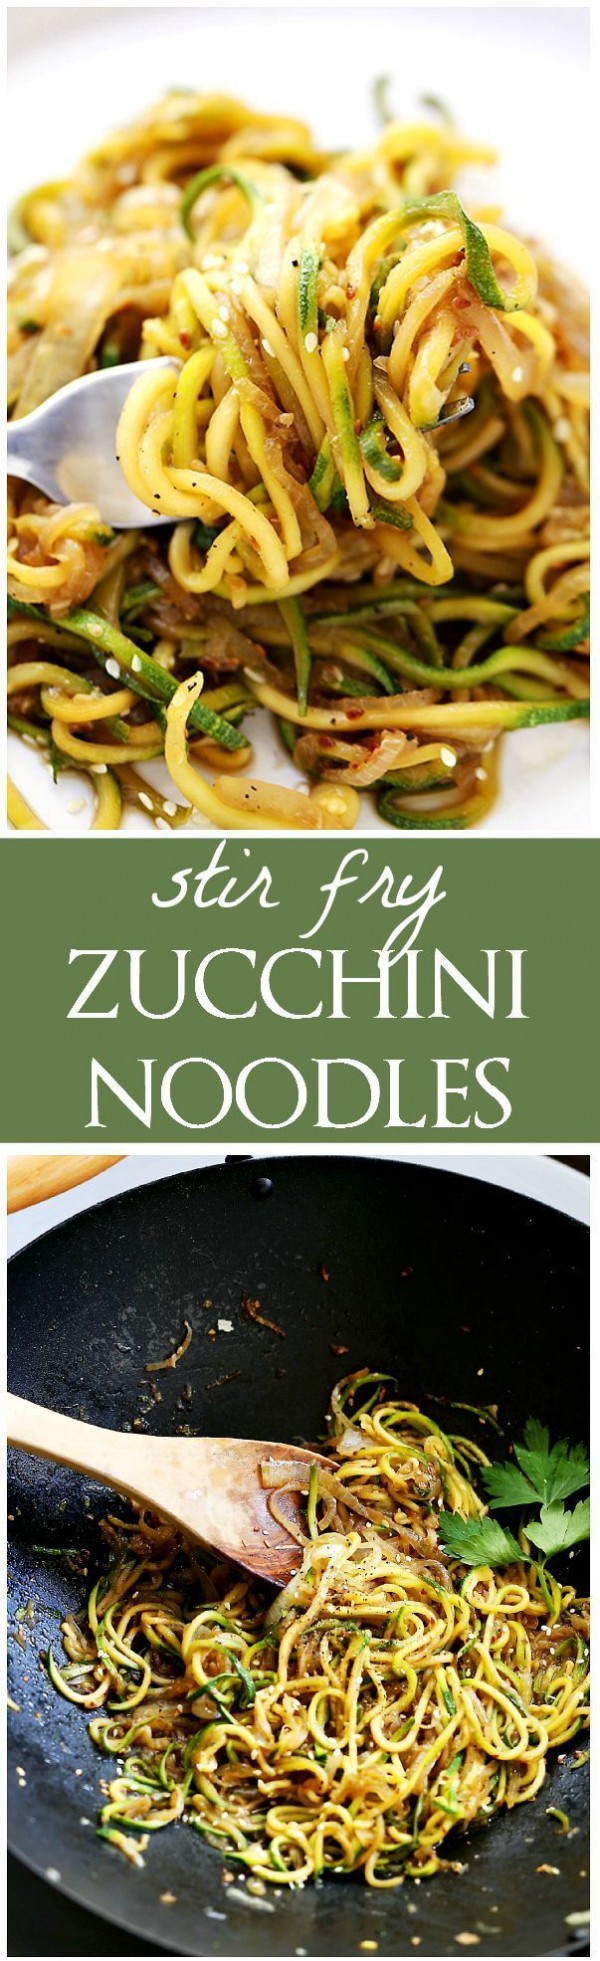 50 Most Delicious and Healthy Vegetarian Recipes - Check out this recipe for stir fry zucchini noodles. Yummy! #RecipeIdeas @recipes_to_go